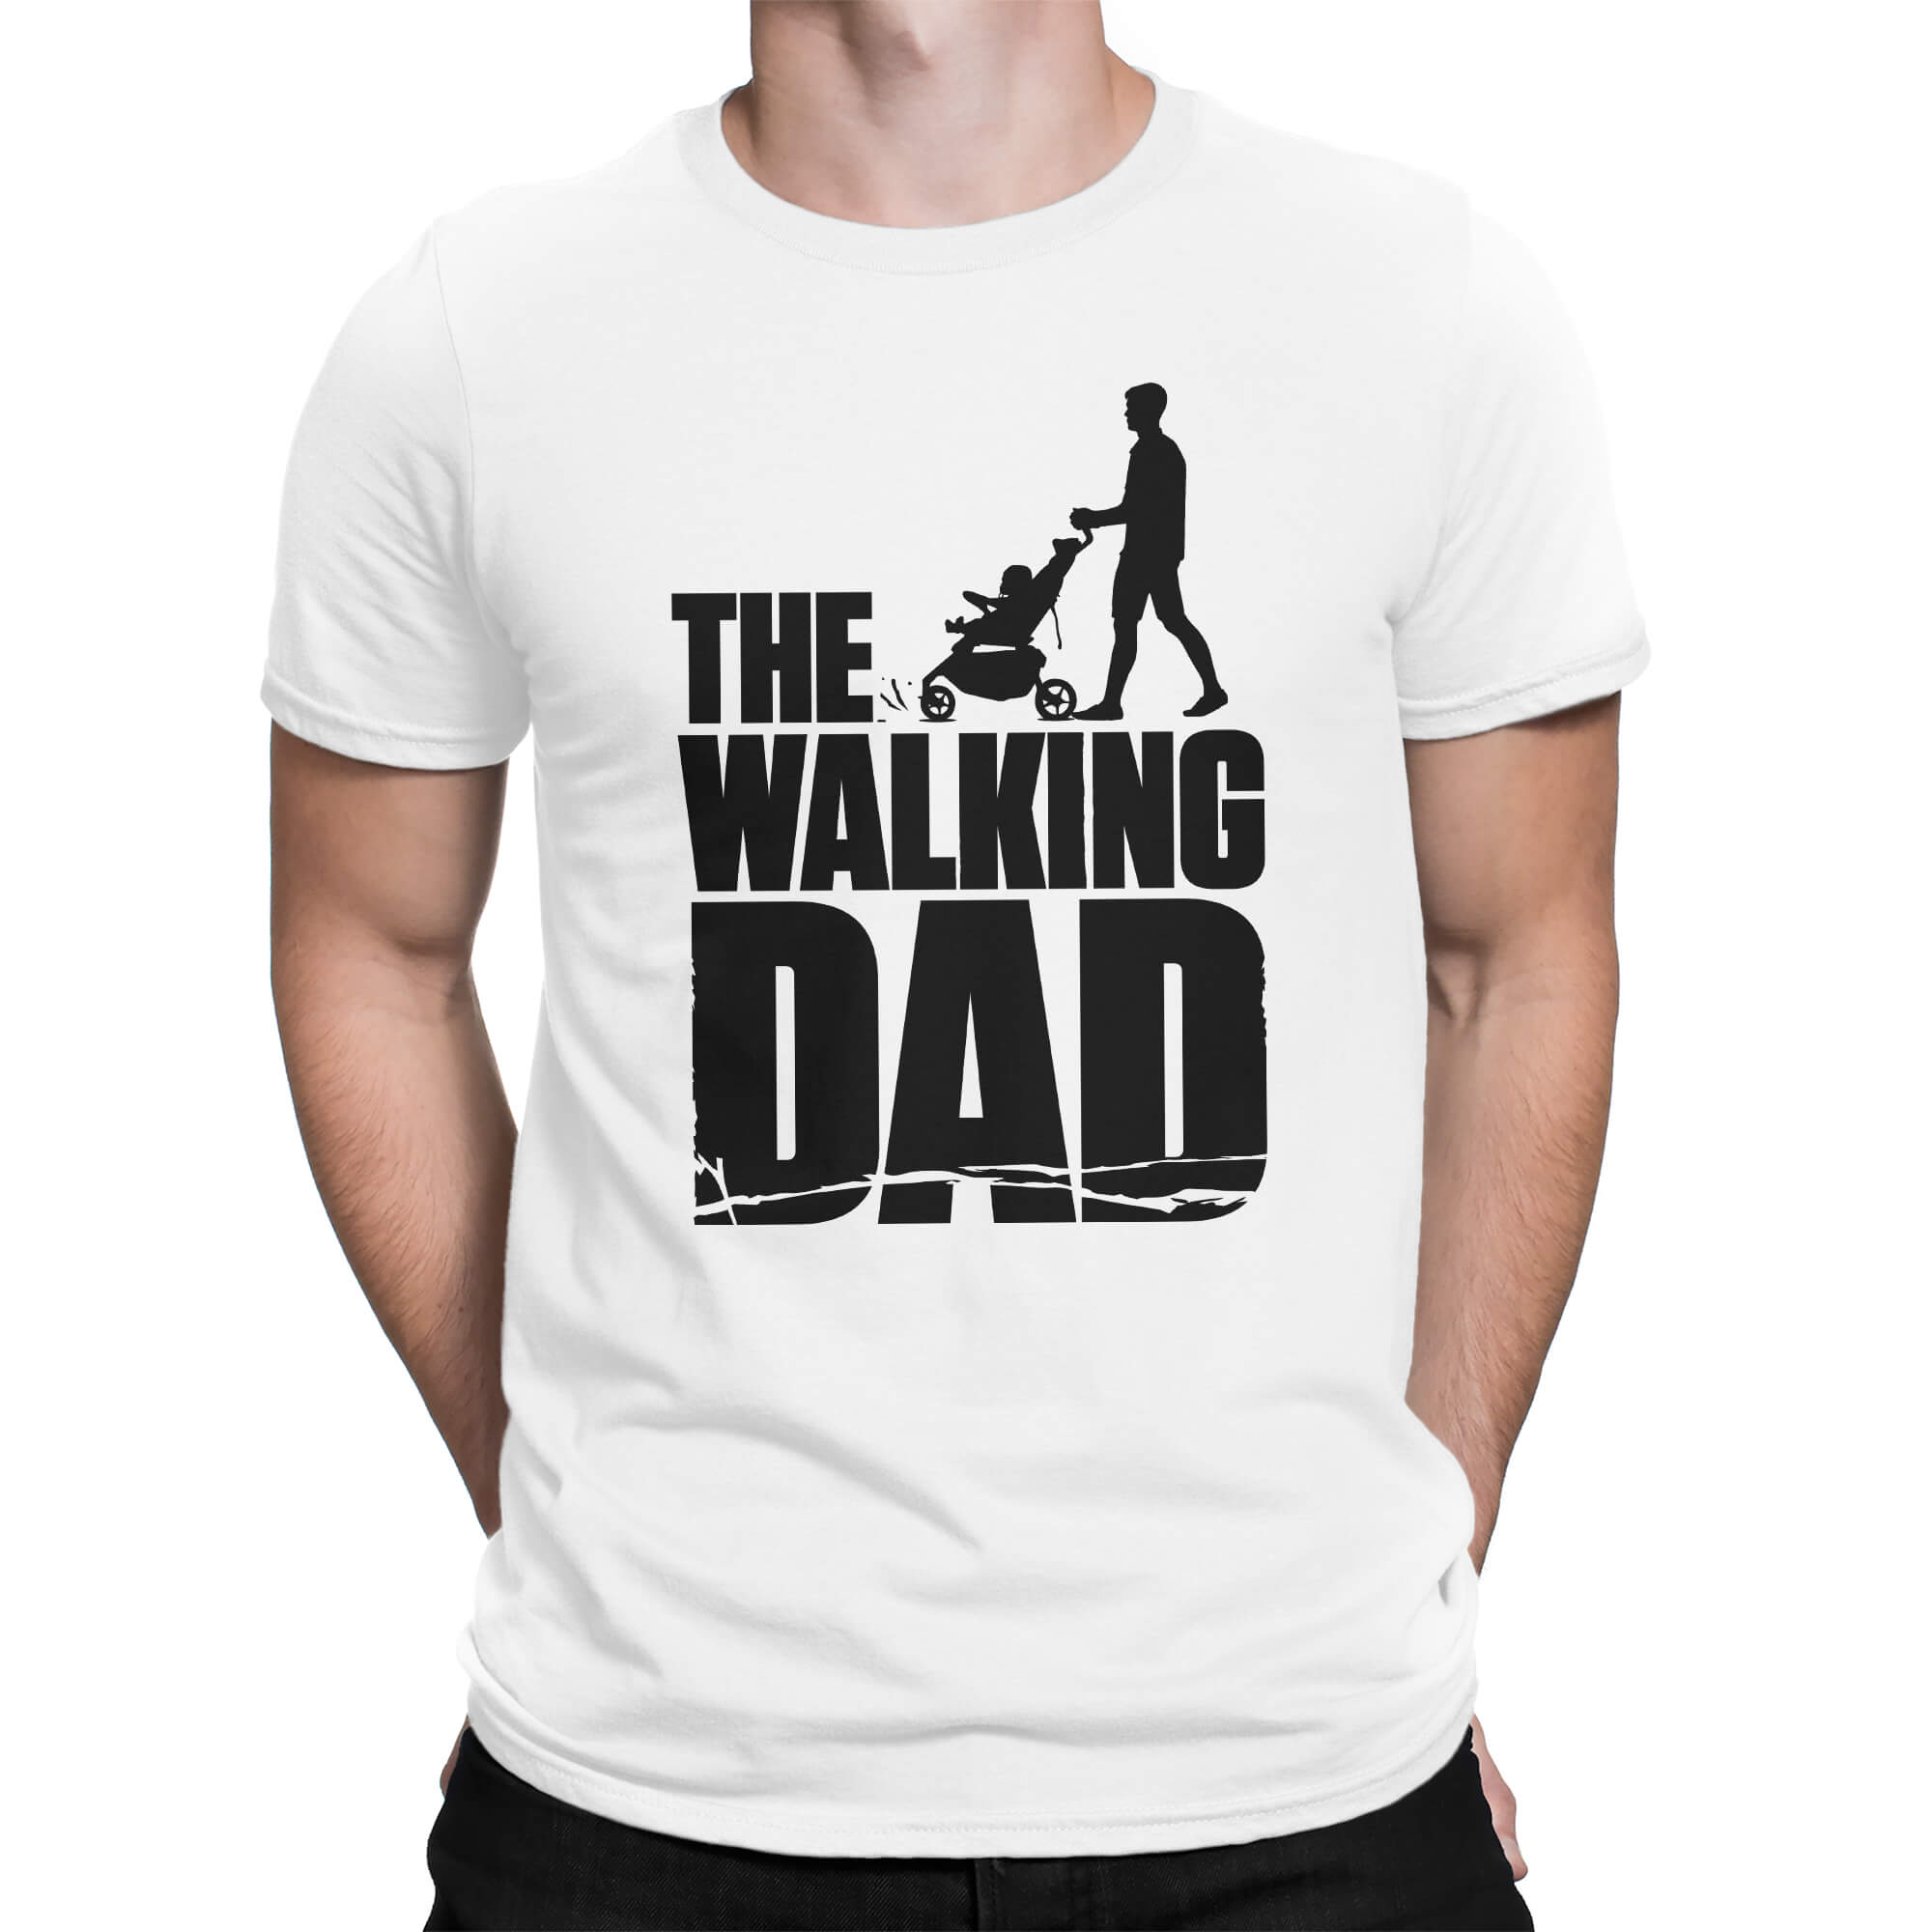 What Would Rick Grimes Do Standard Black T-Shirt with White Print All Sizes NEW